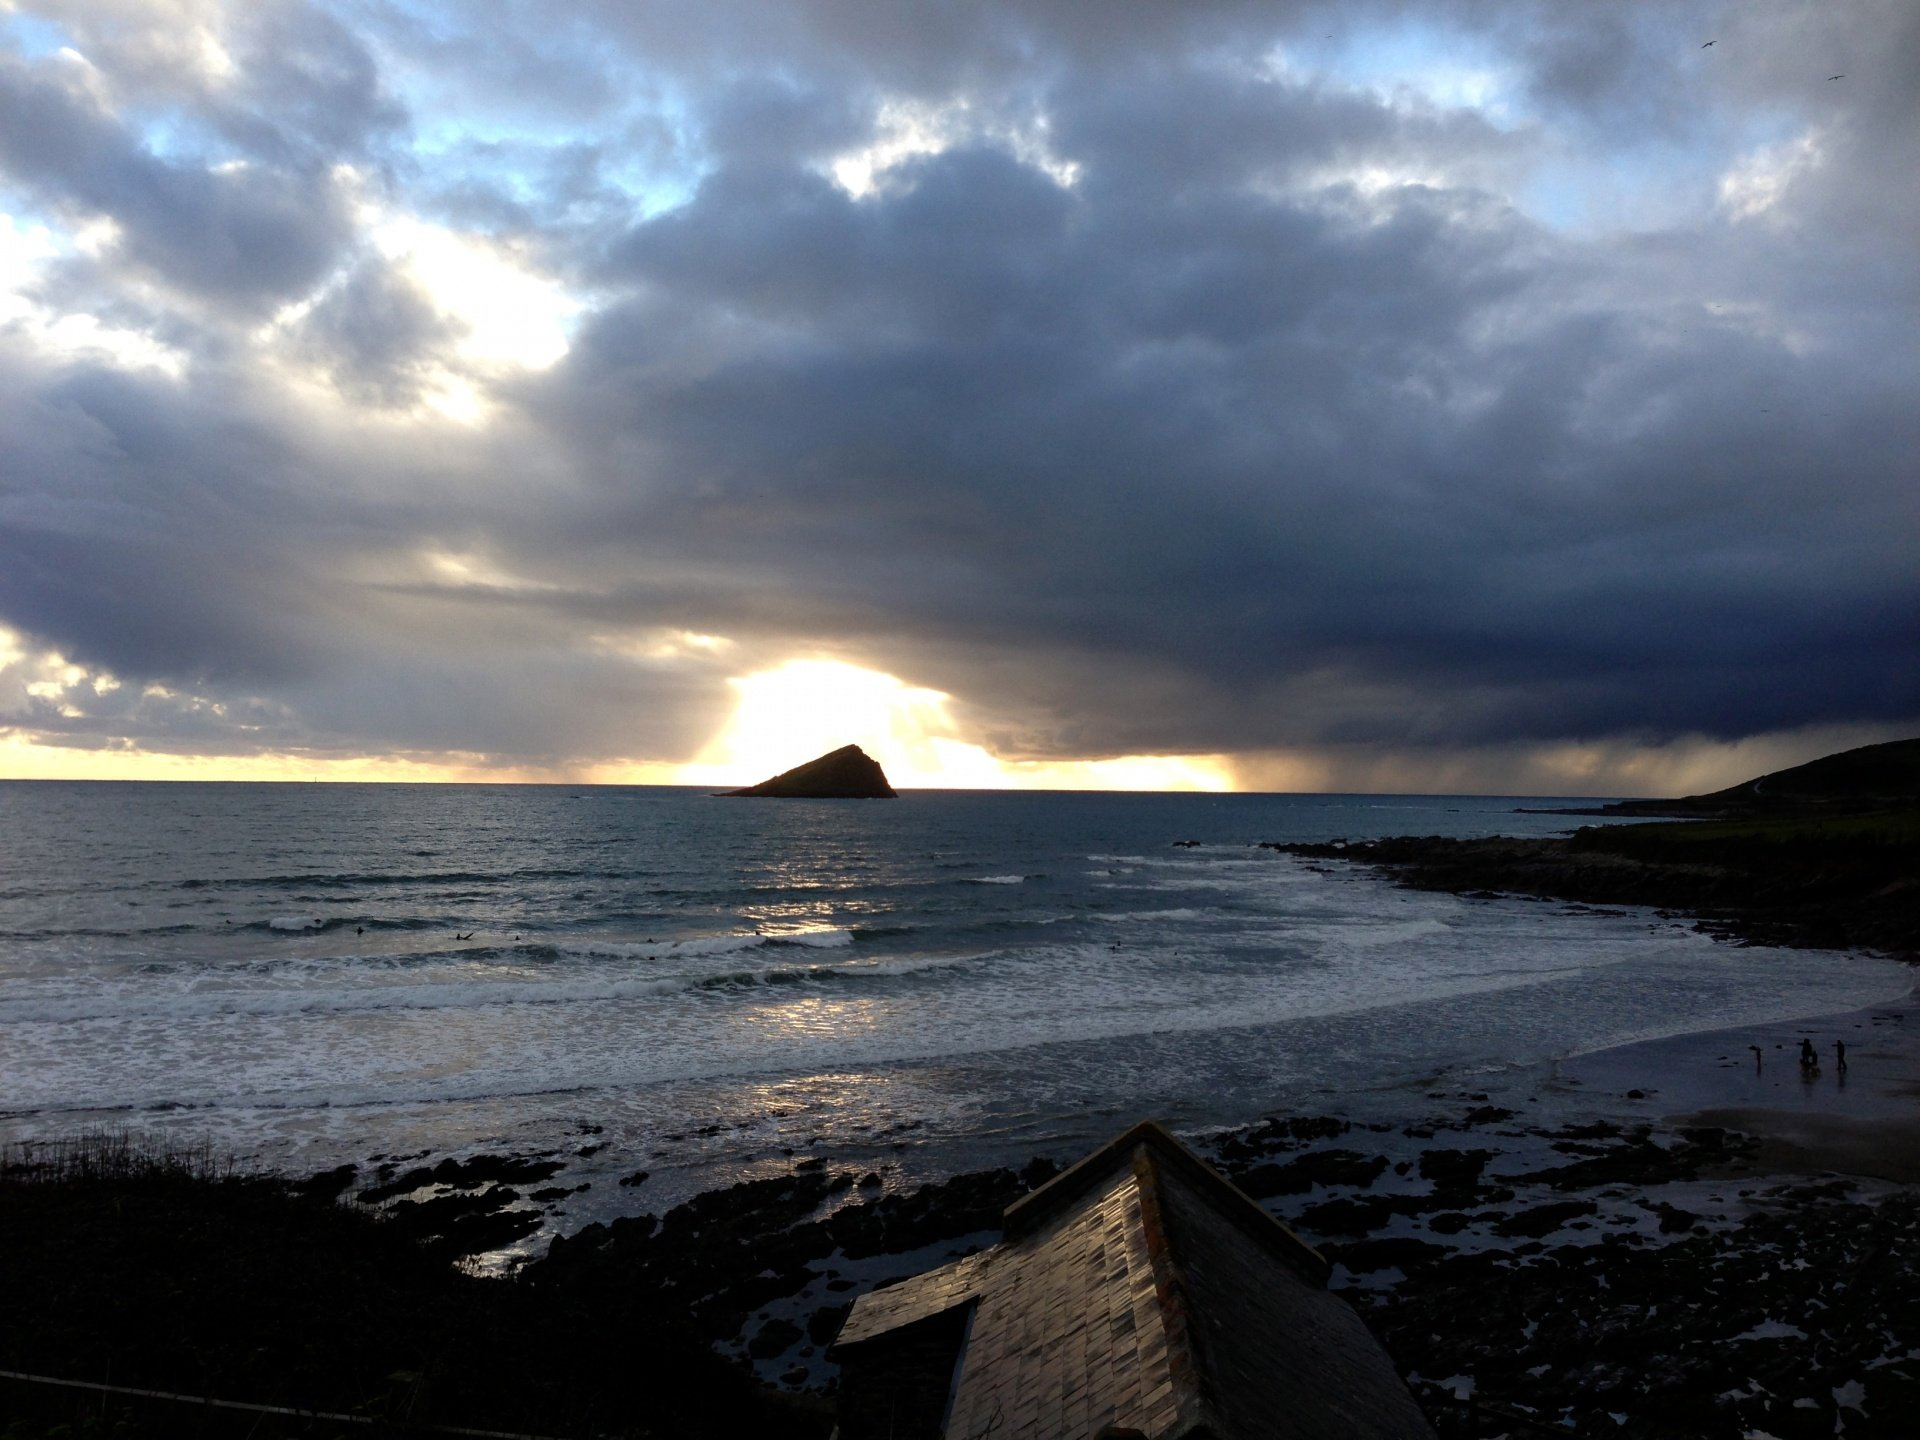 LukeHill's photo of Wembury